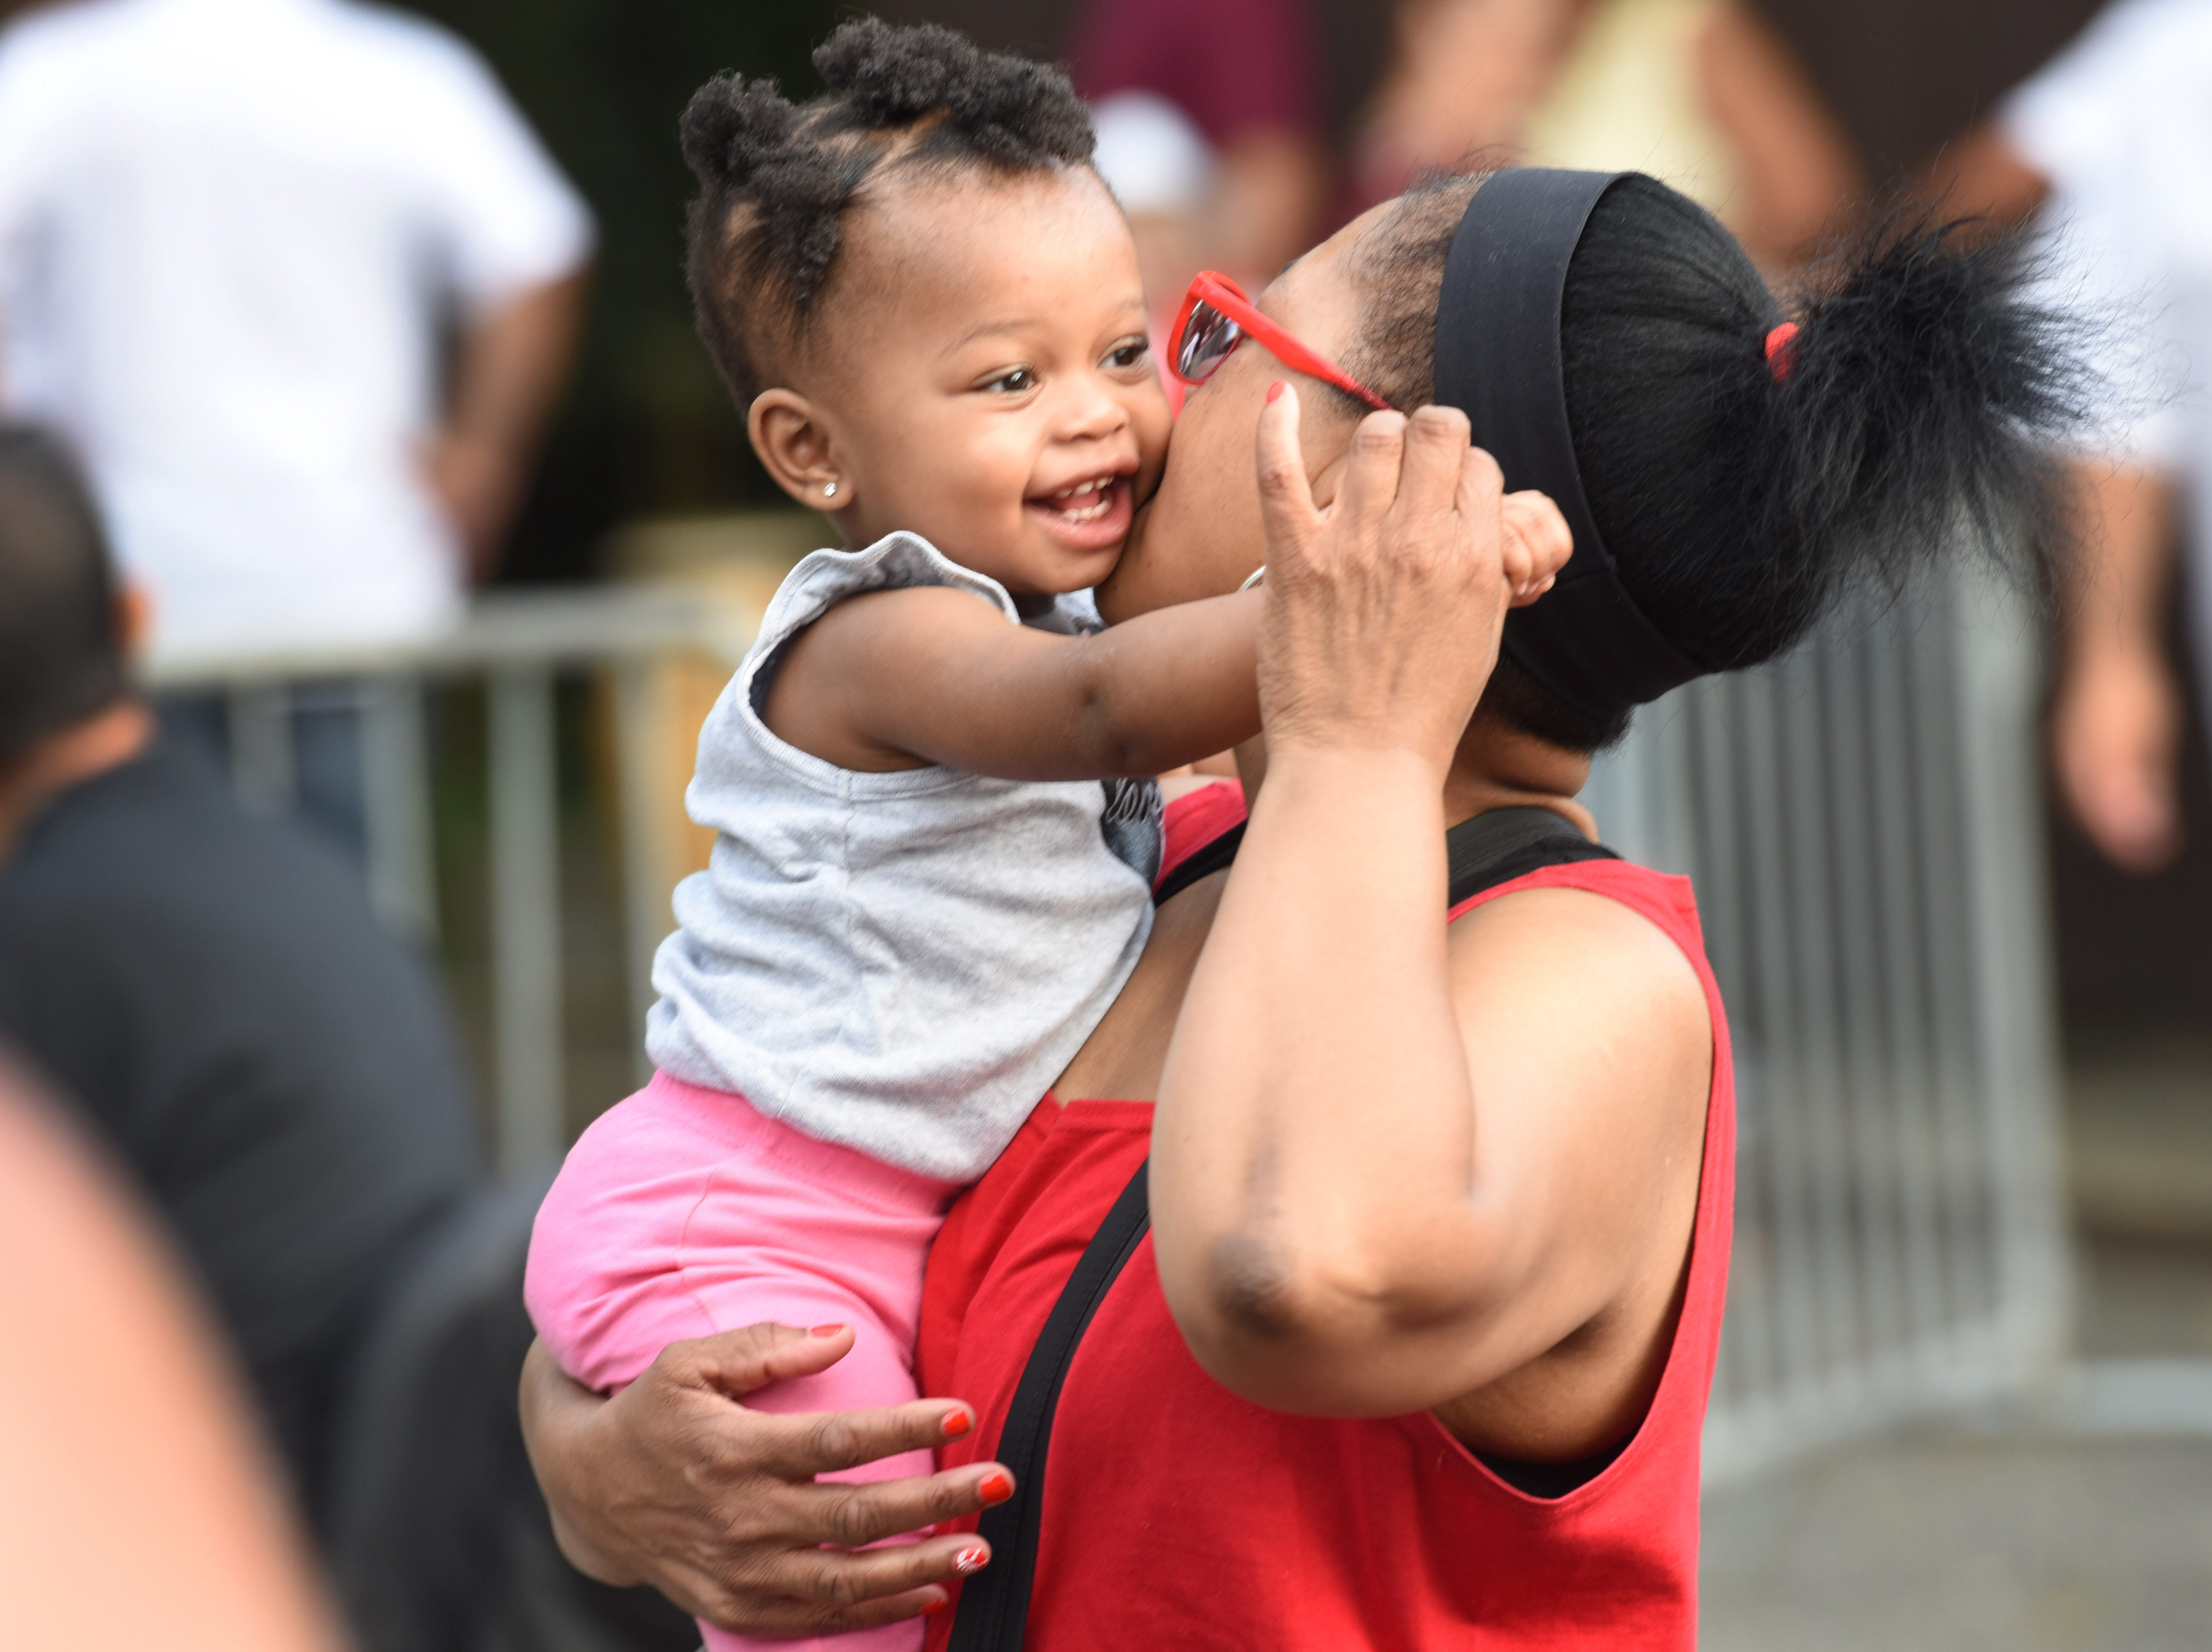 Wendy Glover dancing with her great-grand-son, year-old Wynter Nazareth, at the Great Falls Festival in Paterson